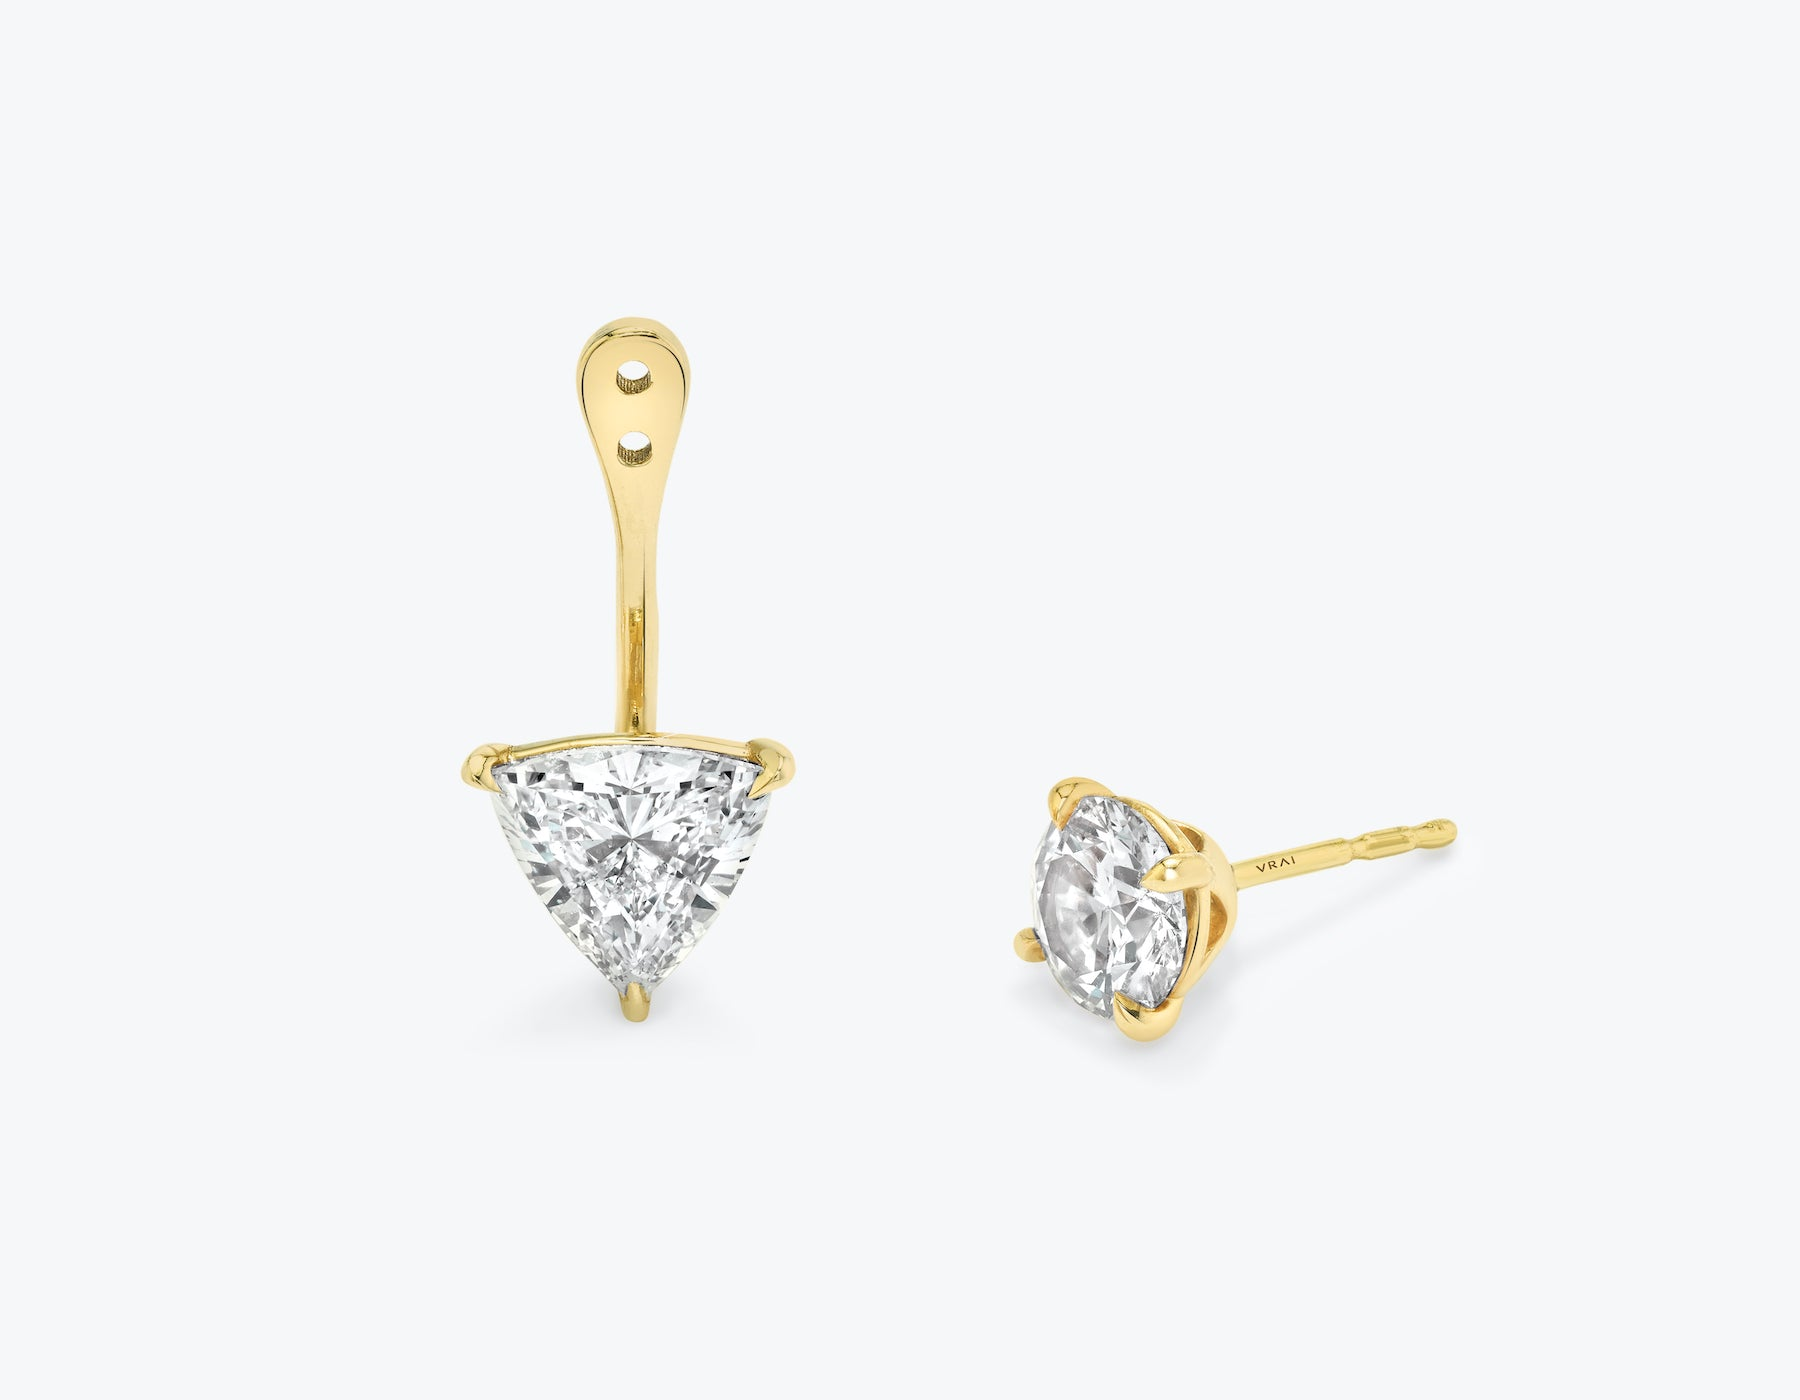 Vrai solitaire trillion diamond drop ear jackets made in 14k solid gold with sustainably created diamonds with round solitaire diamond stud, 14K Yellow Gold